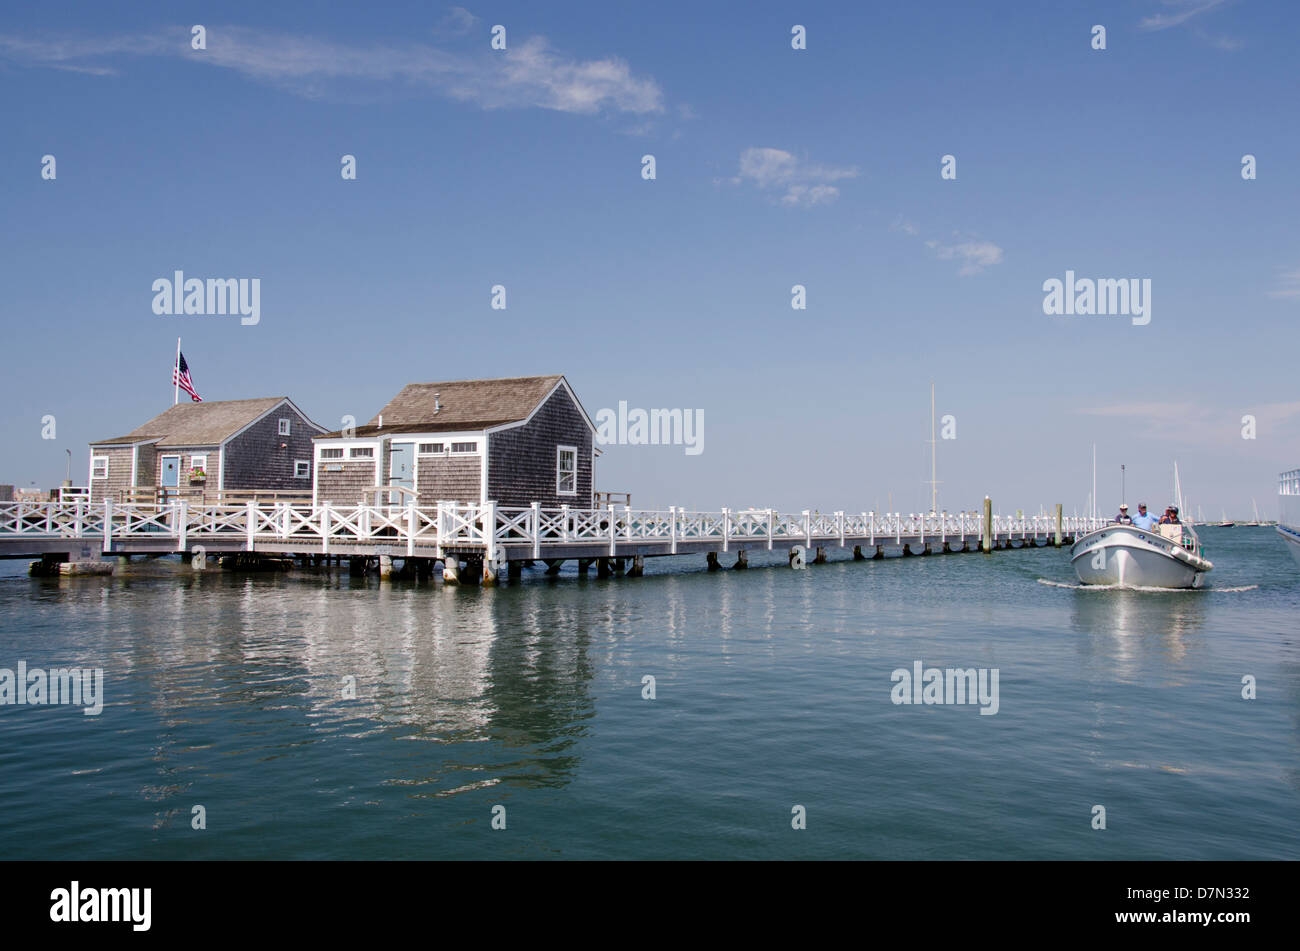 Massachusetts, New England, Nantucket. Straight Wharf water taxi and typical waterfront cottages. - Stock Image